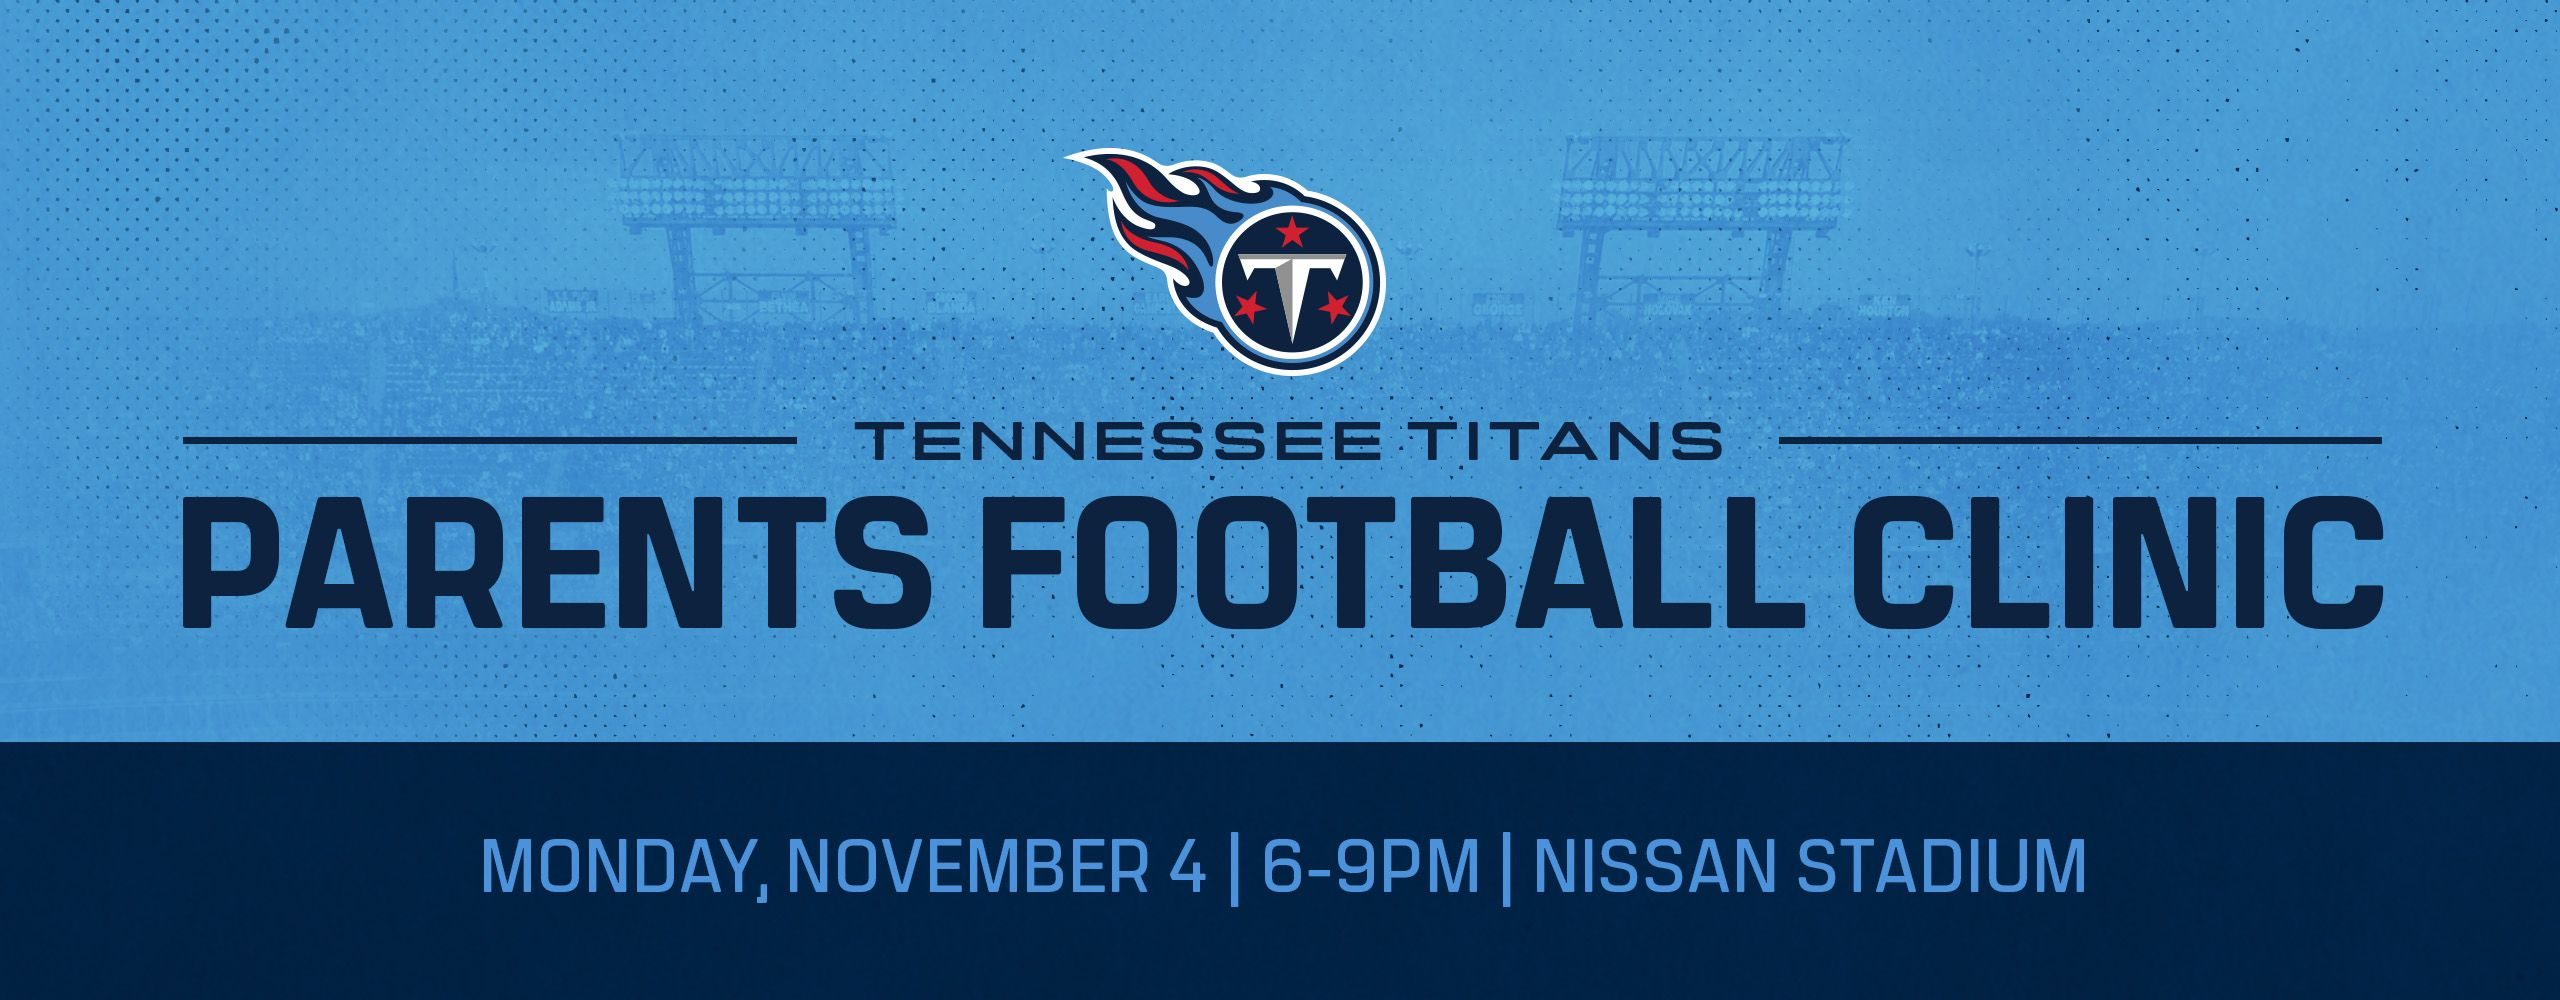 Tennessee Titans Parents Football Clinic